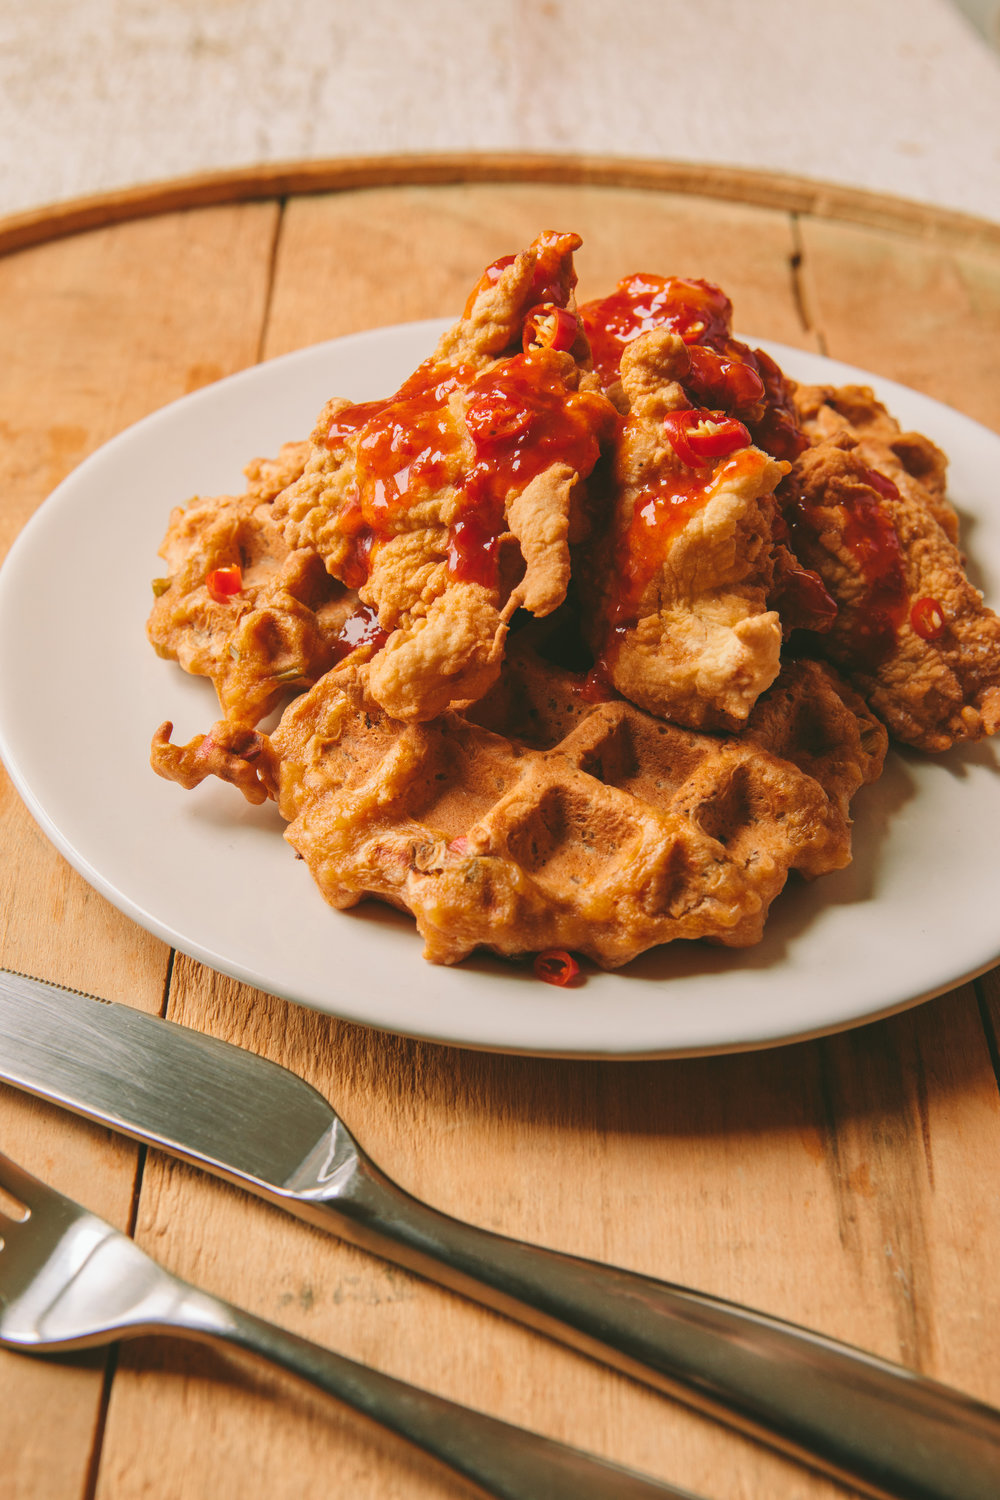 The Art of the Mashup_General Gau Chicken and Pork Fried Waffles_Brian Samuels Photography_January 2017-8902.jpg